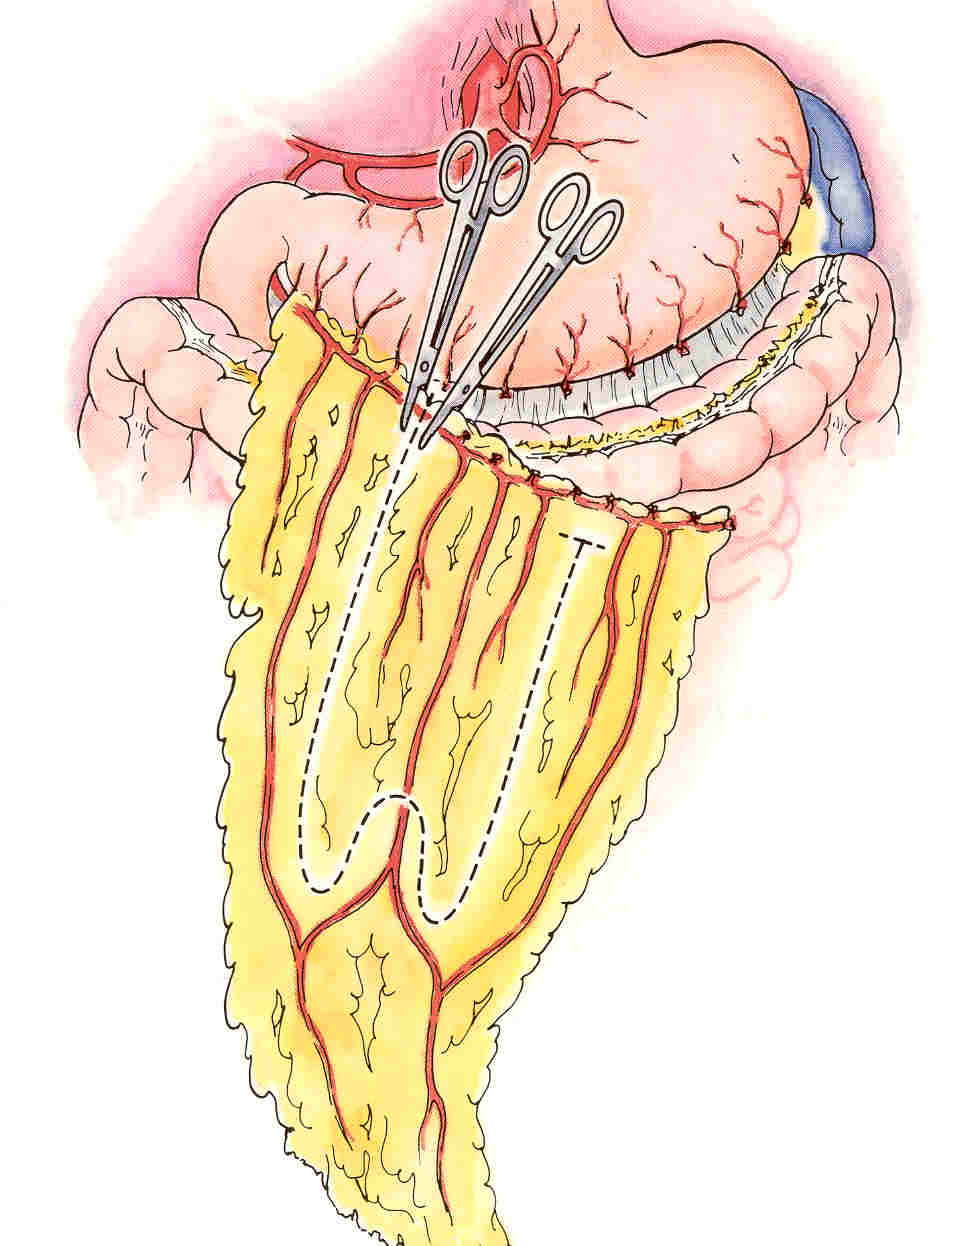 THE OMENTUM MOMENTUM FOR SPINAL CORD INJURY